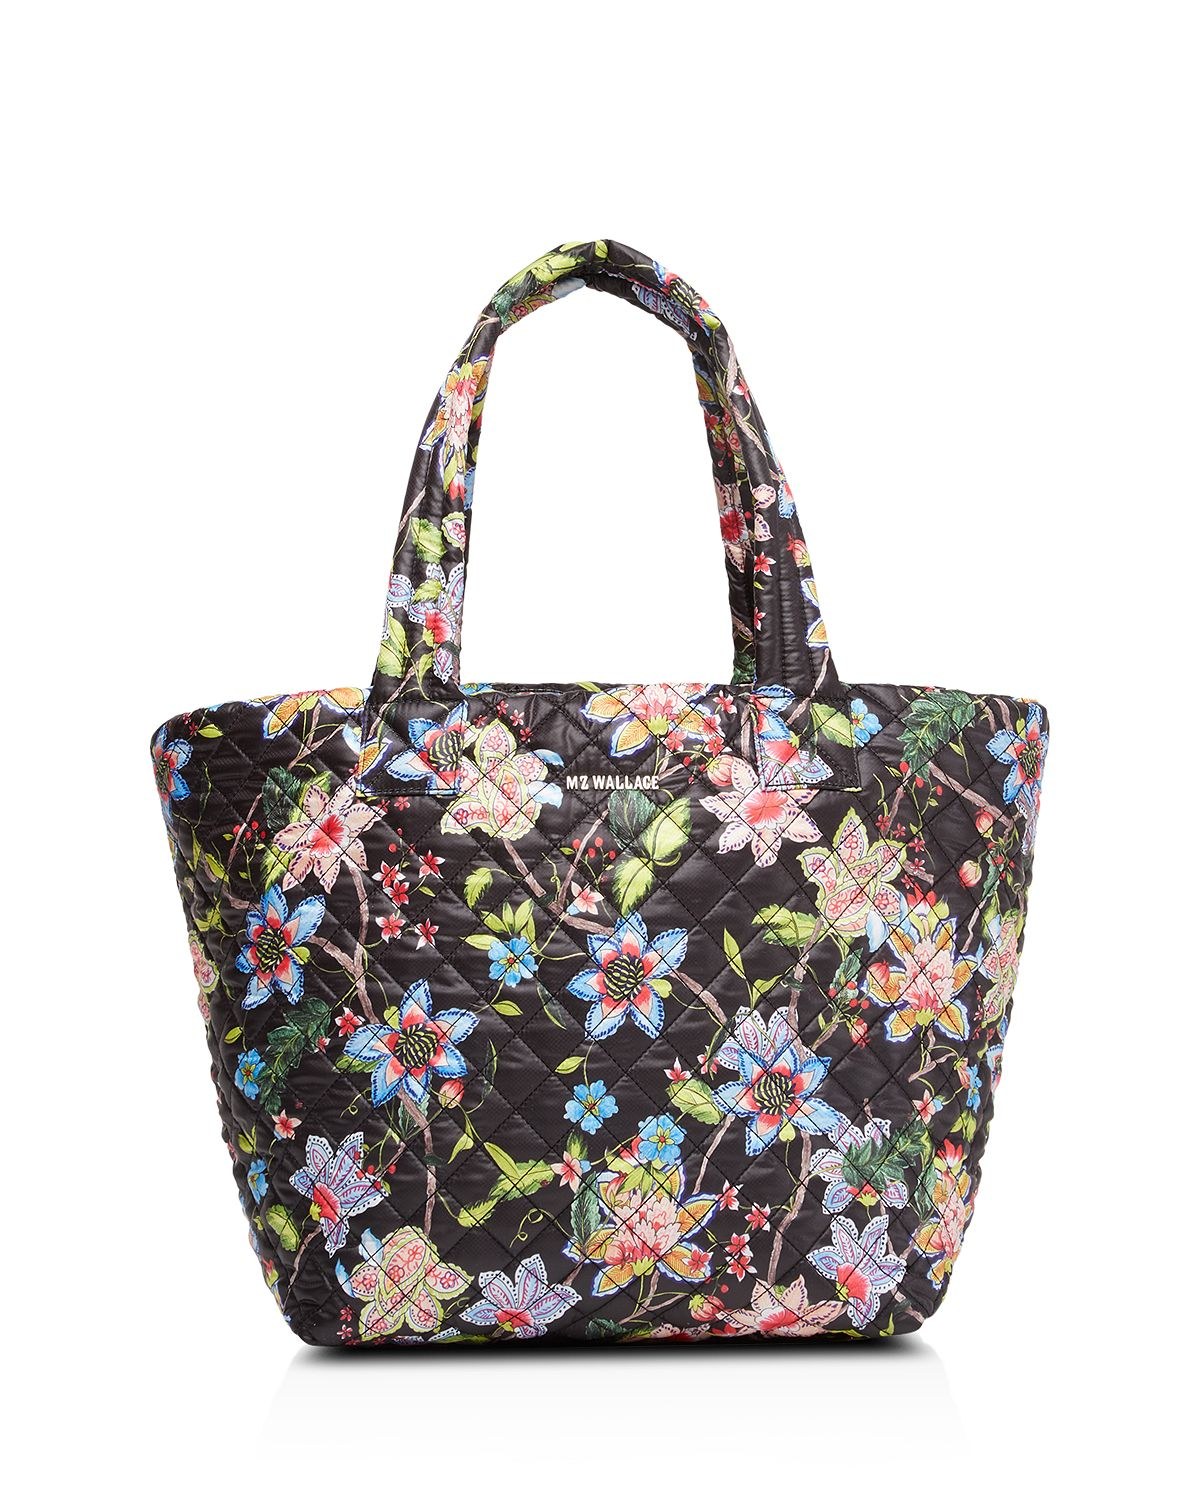 MZ WALLACE - Black Floral Medium Metro Tote - 100% Exclusive